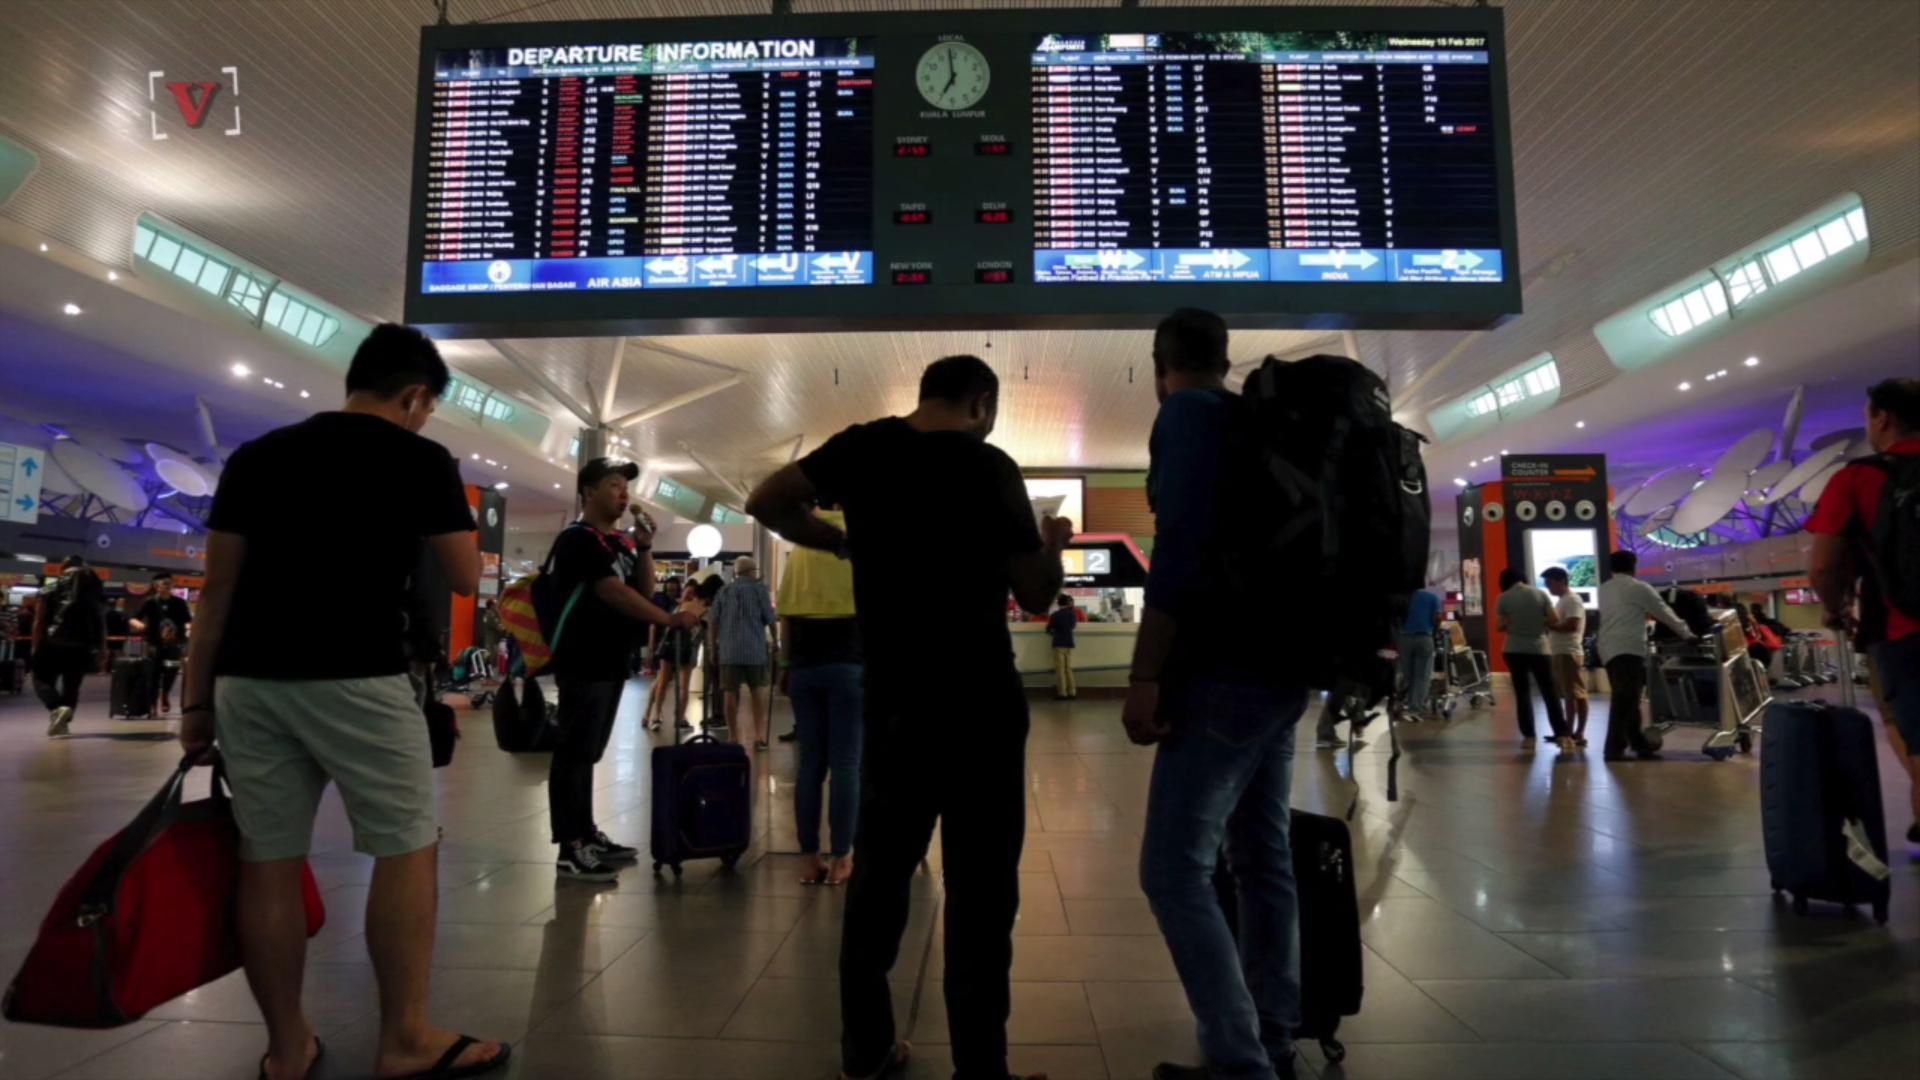 Malaysia Sweeping Airport for Chemical Weapons After Kim Jong-nam's Death